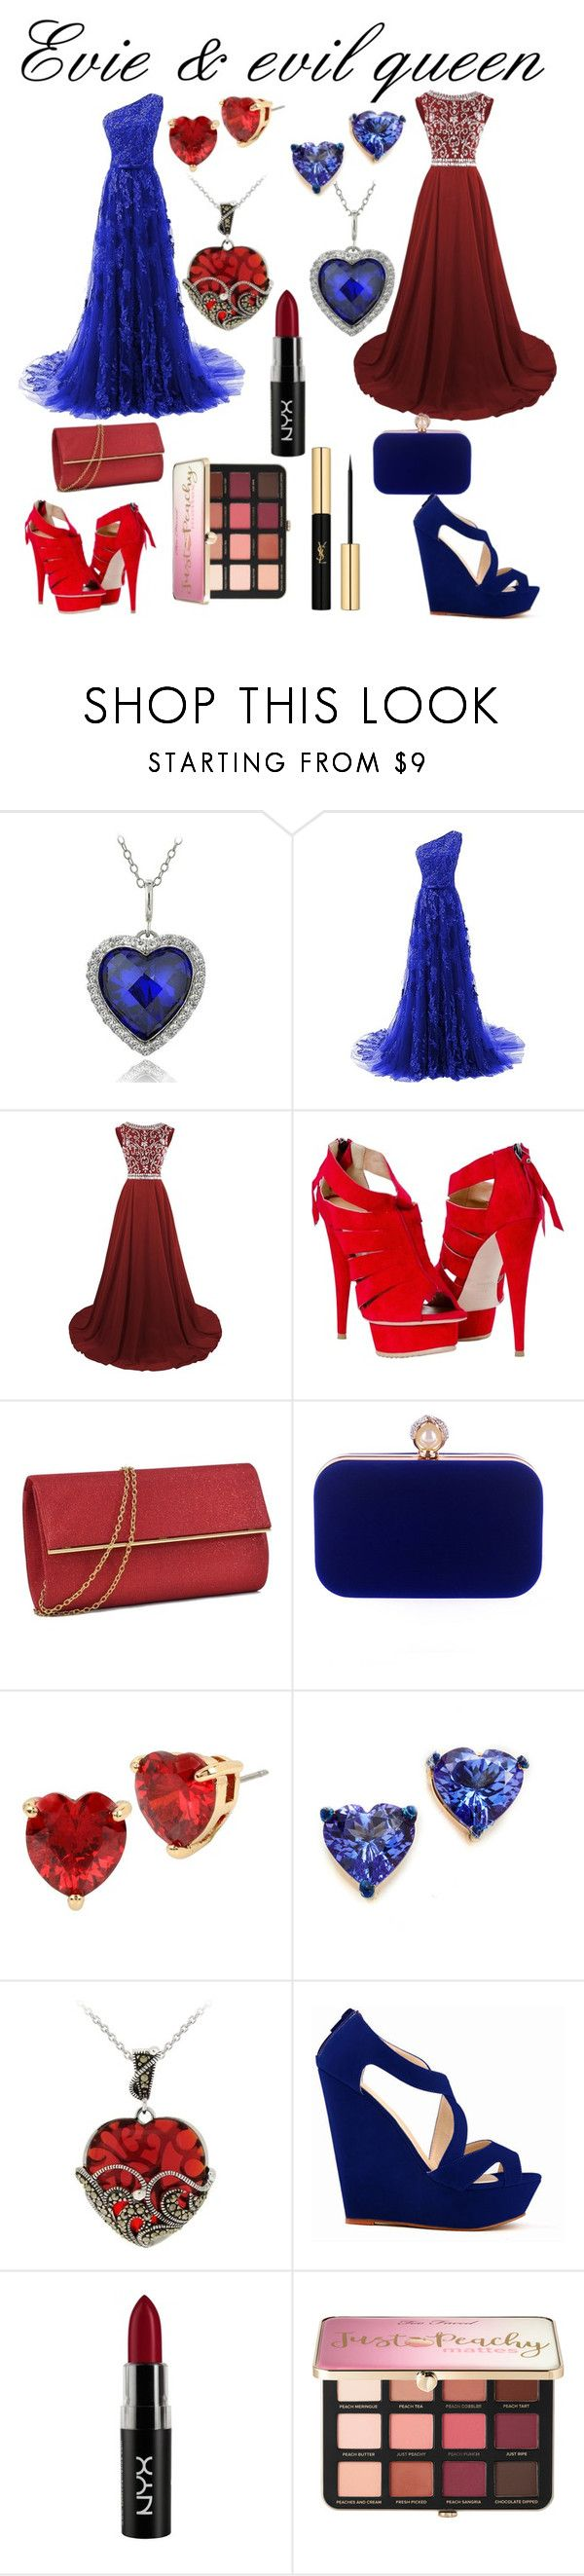 """""""Evie & evil queen"""" by alexandra-wolfie ❤ liked on Polyvore featuring Icz Stonez, WithChic, Betsey Johnson, Holly Dyment, Glitzy Rocks, NYX, Sephora Collection and Yves Saint Laurent"""